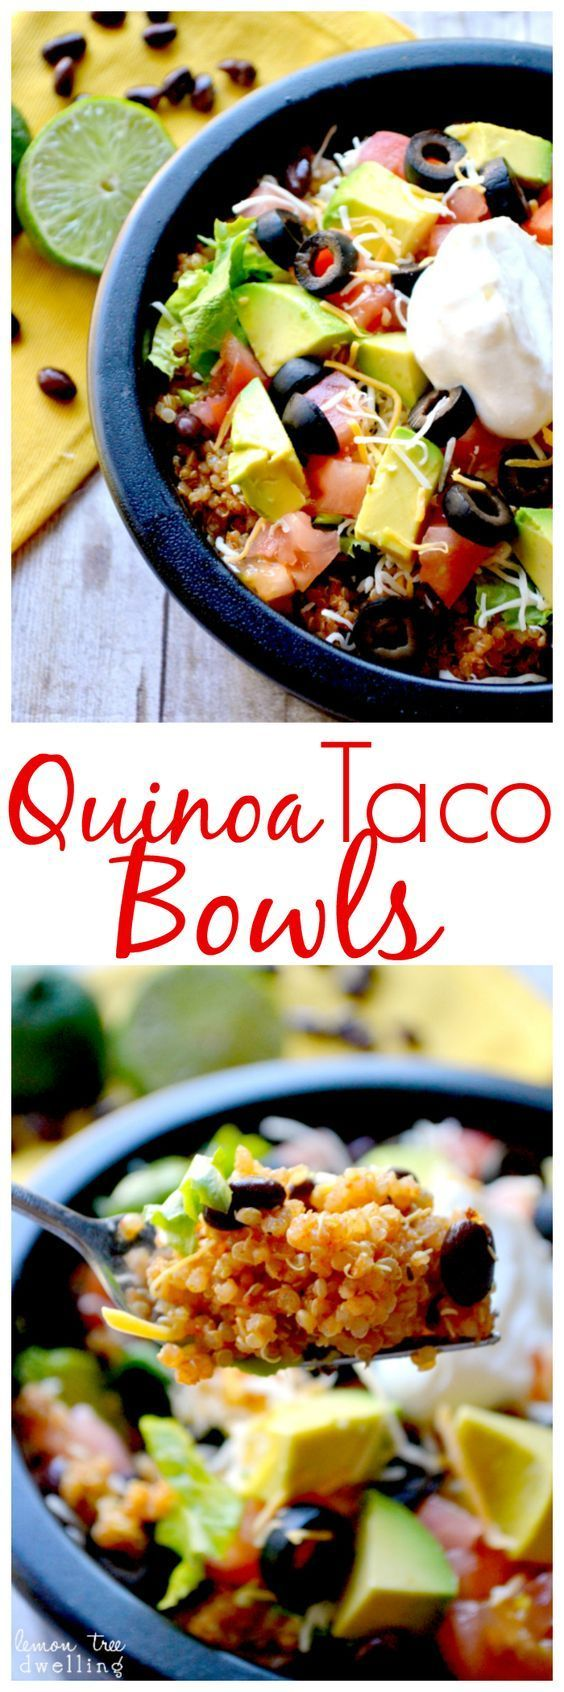 Quinoa Taco Bowls | Lemon Tree Dwelling Just made for the kids and they LOVED it....didn't have olives or beans but put blue corn tacos in (Vegan Tacos Bowl)